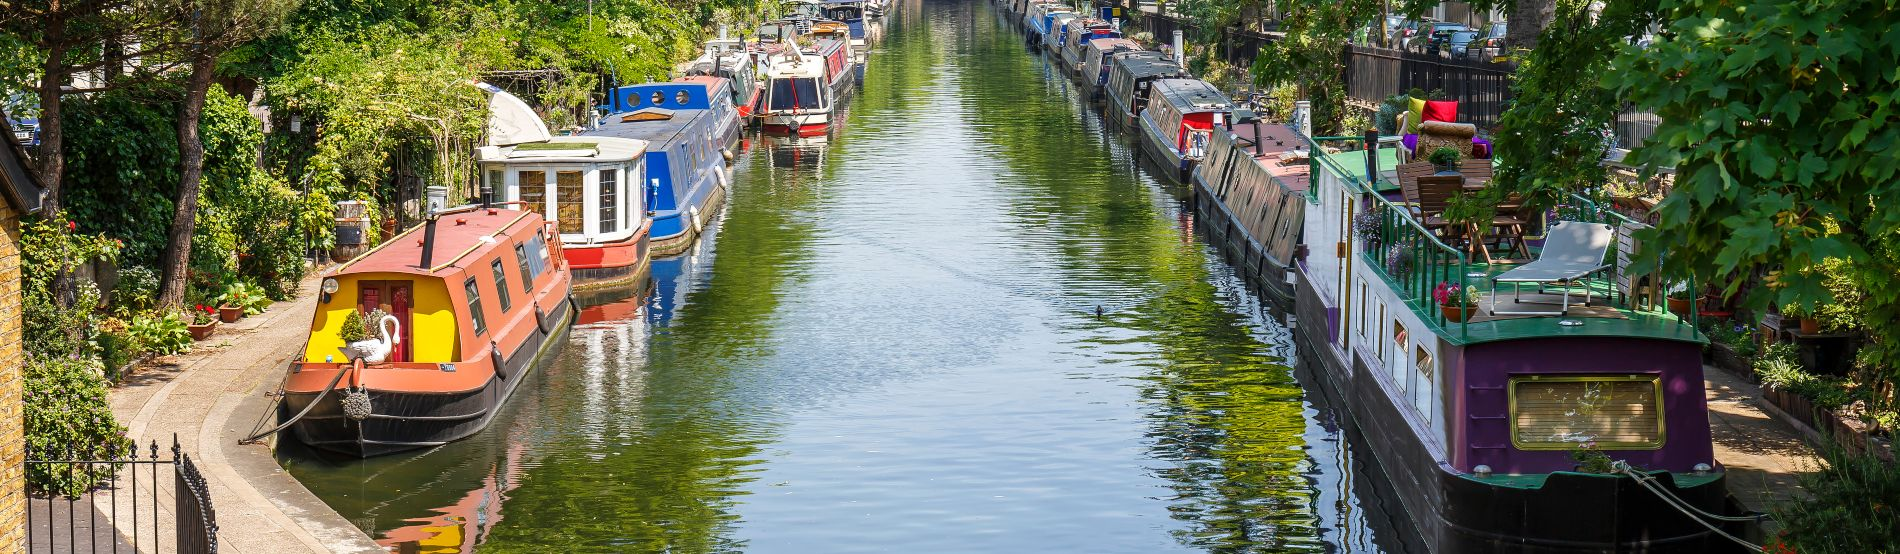 Regent's canal with canal boats either side